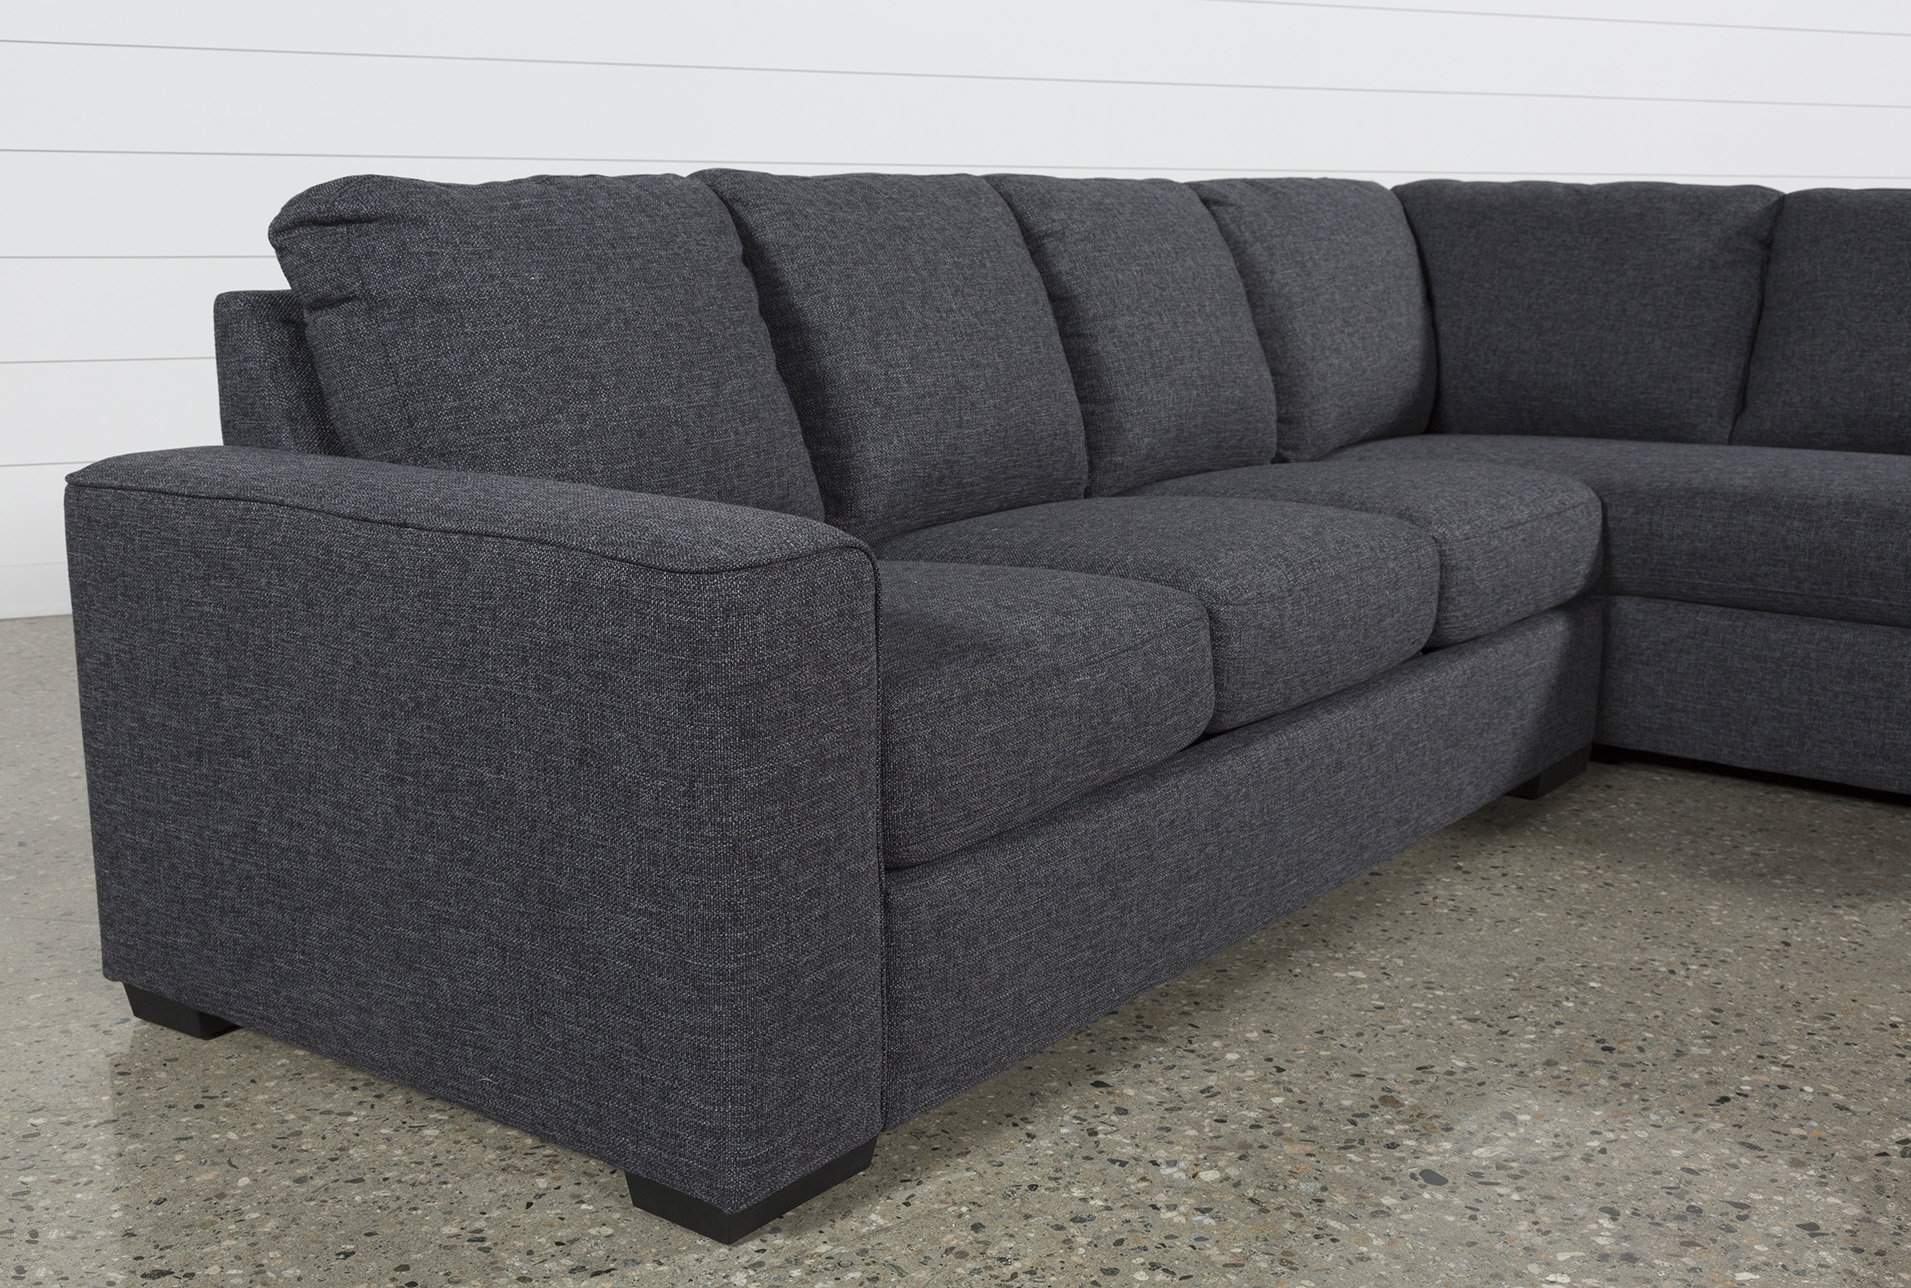 Lucy Dark Grey 2 Piece Sectional W/raf Chaise | Pinterest | Dark Intended For Lucy Grey 2 Piece Sleeper Sectionals With Raf Chaise (View 4 of 25)